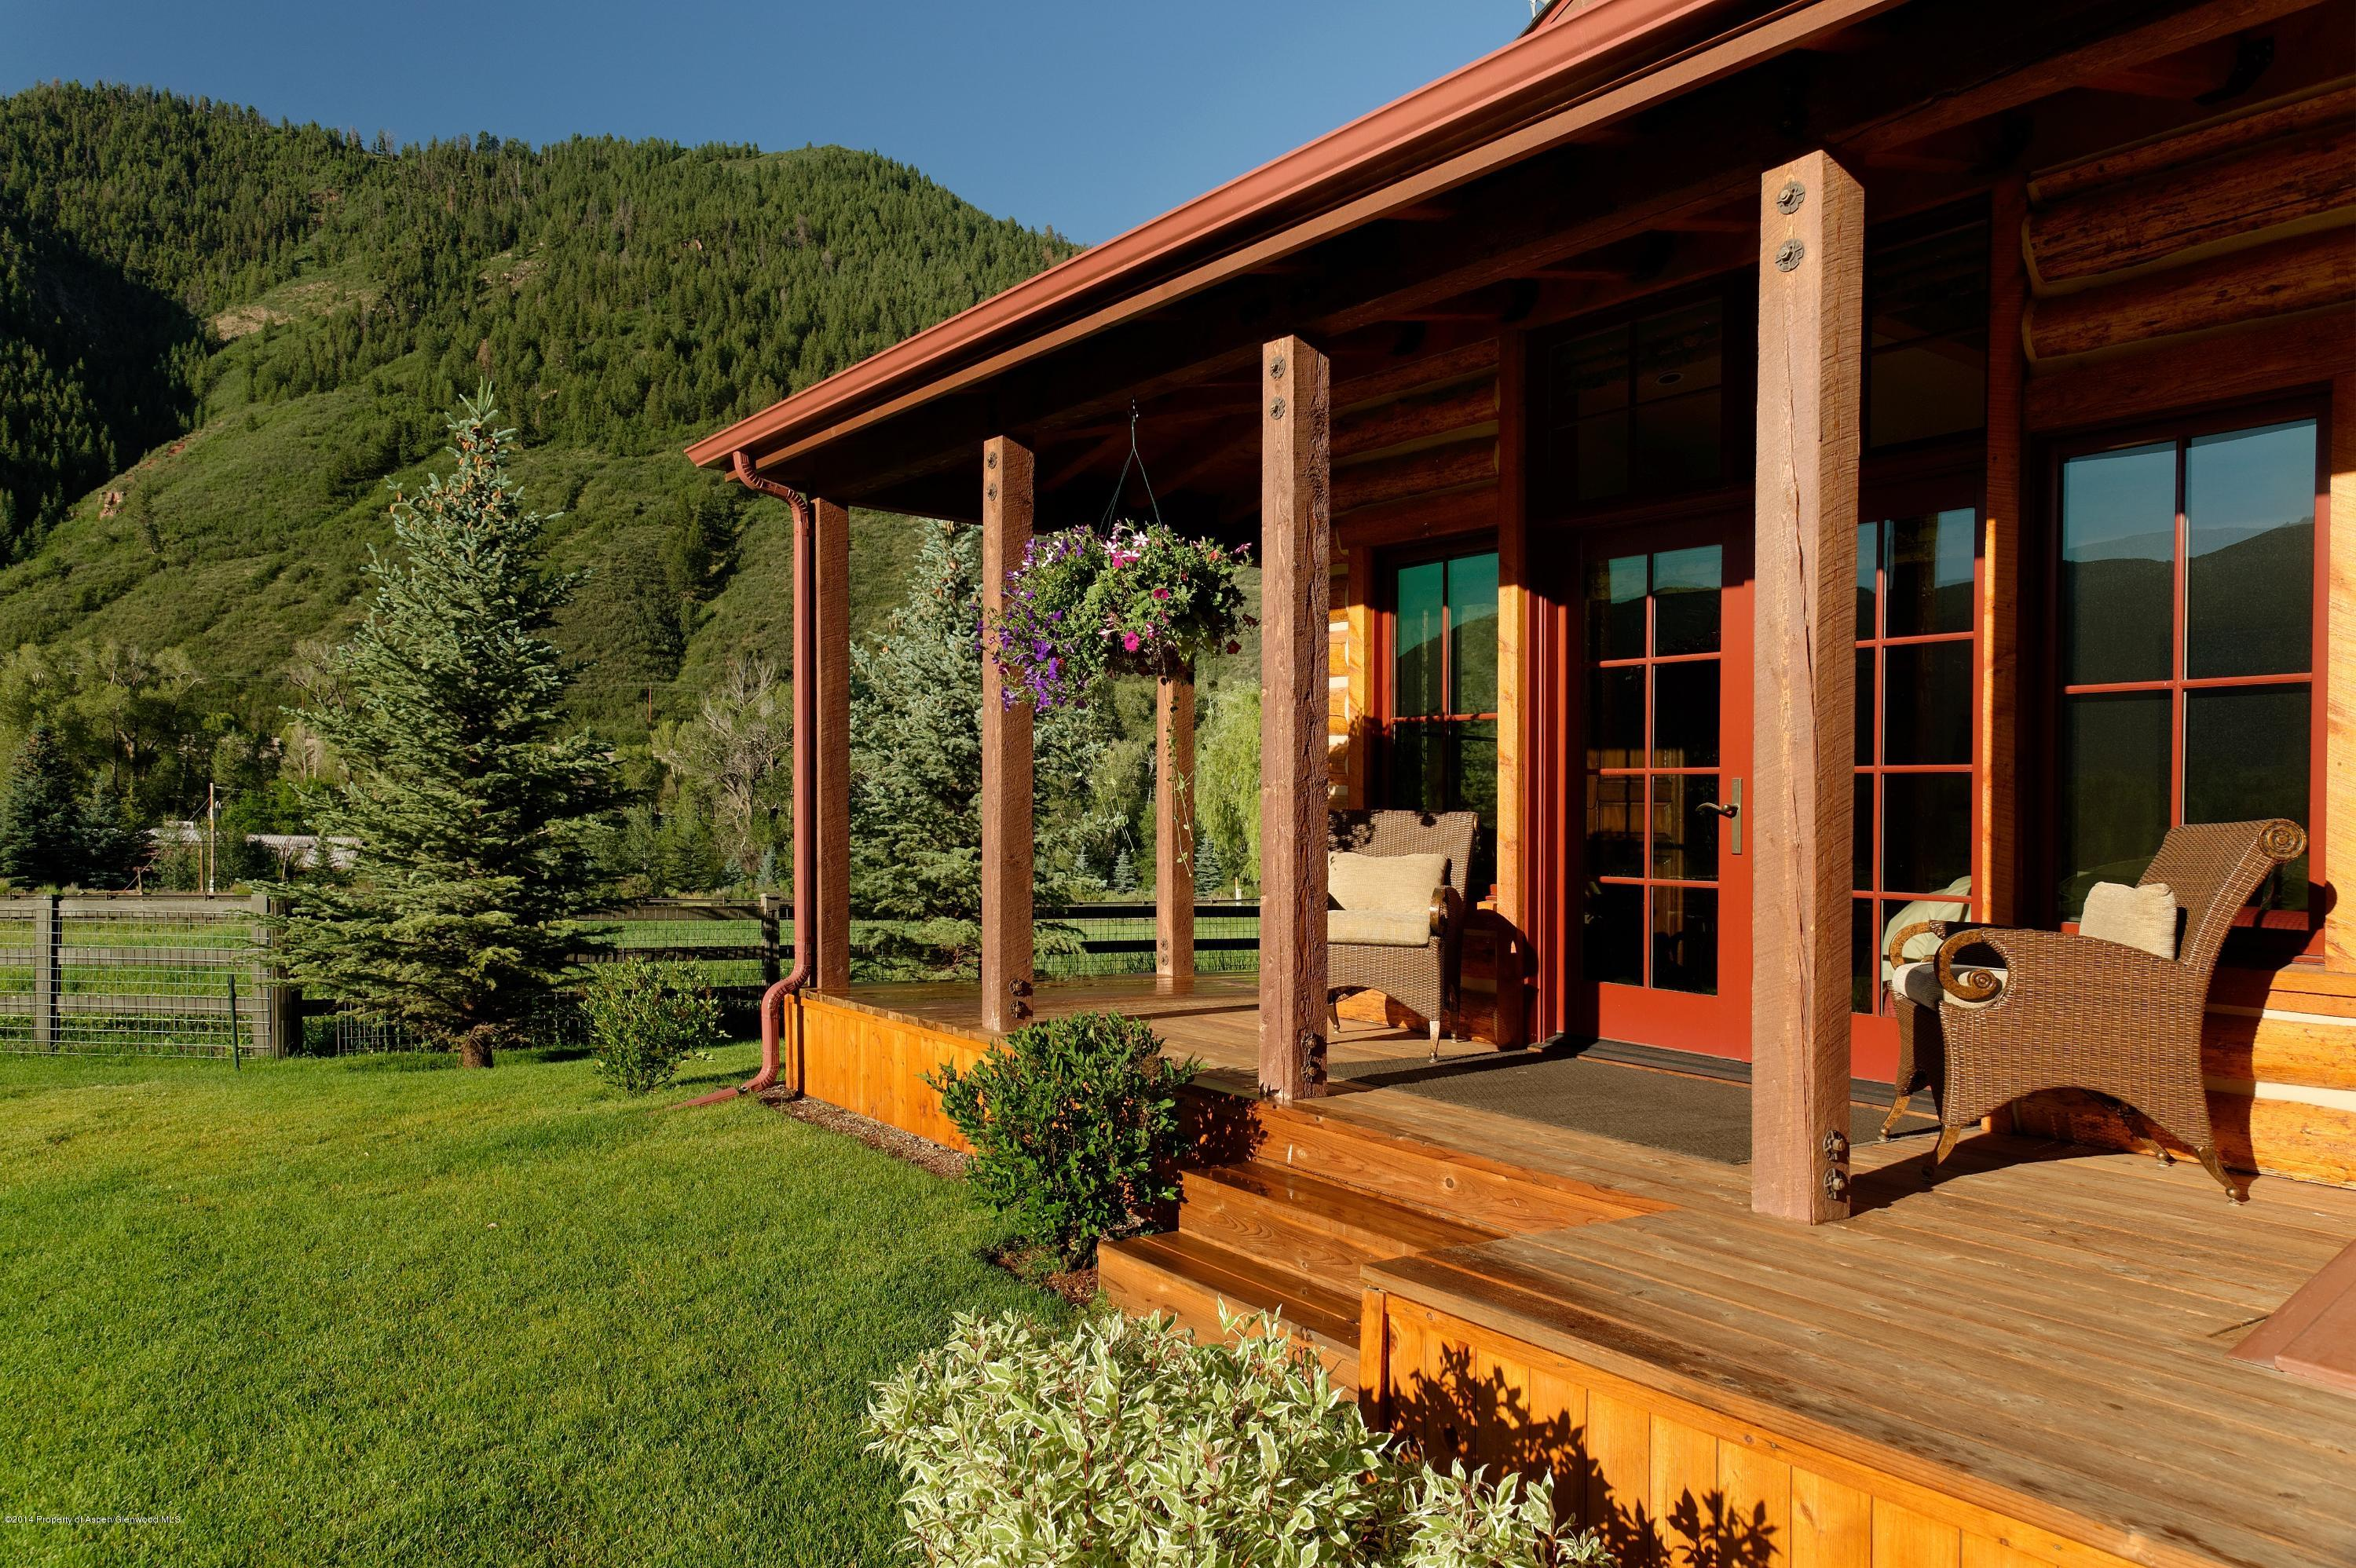 MLS# 135595 - 51 - 50 E River Ranch Road, Snowmass, CO 81654